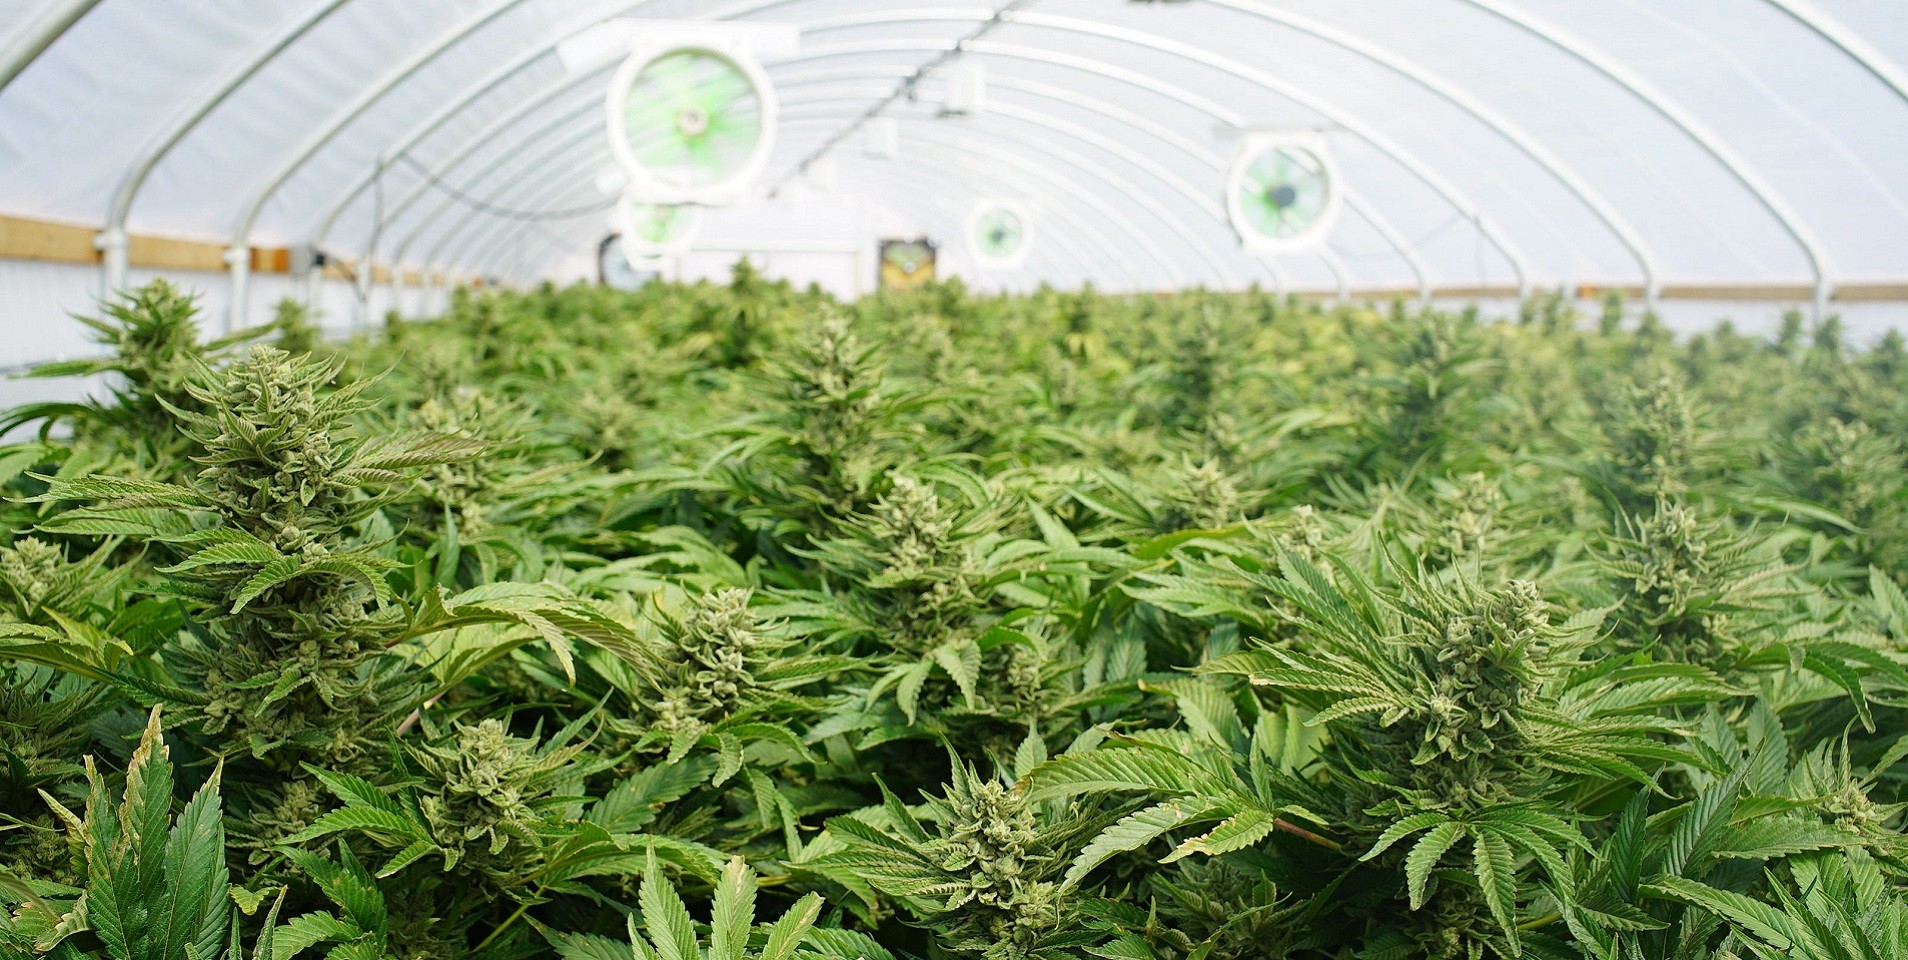 Do's and Don'ts of Commercial Cannabis Harvesting